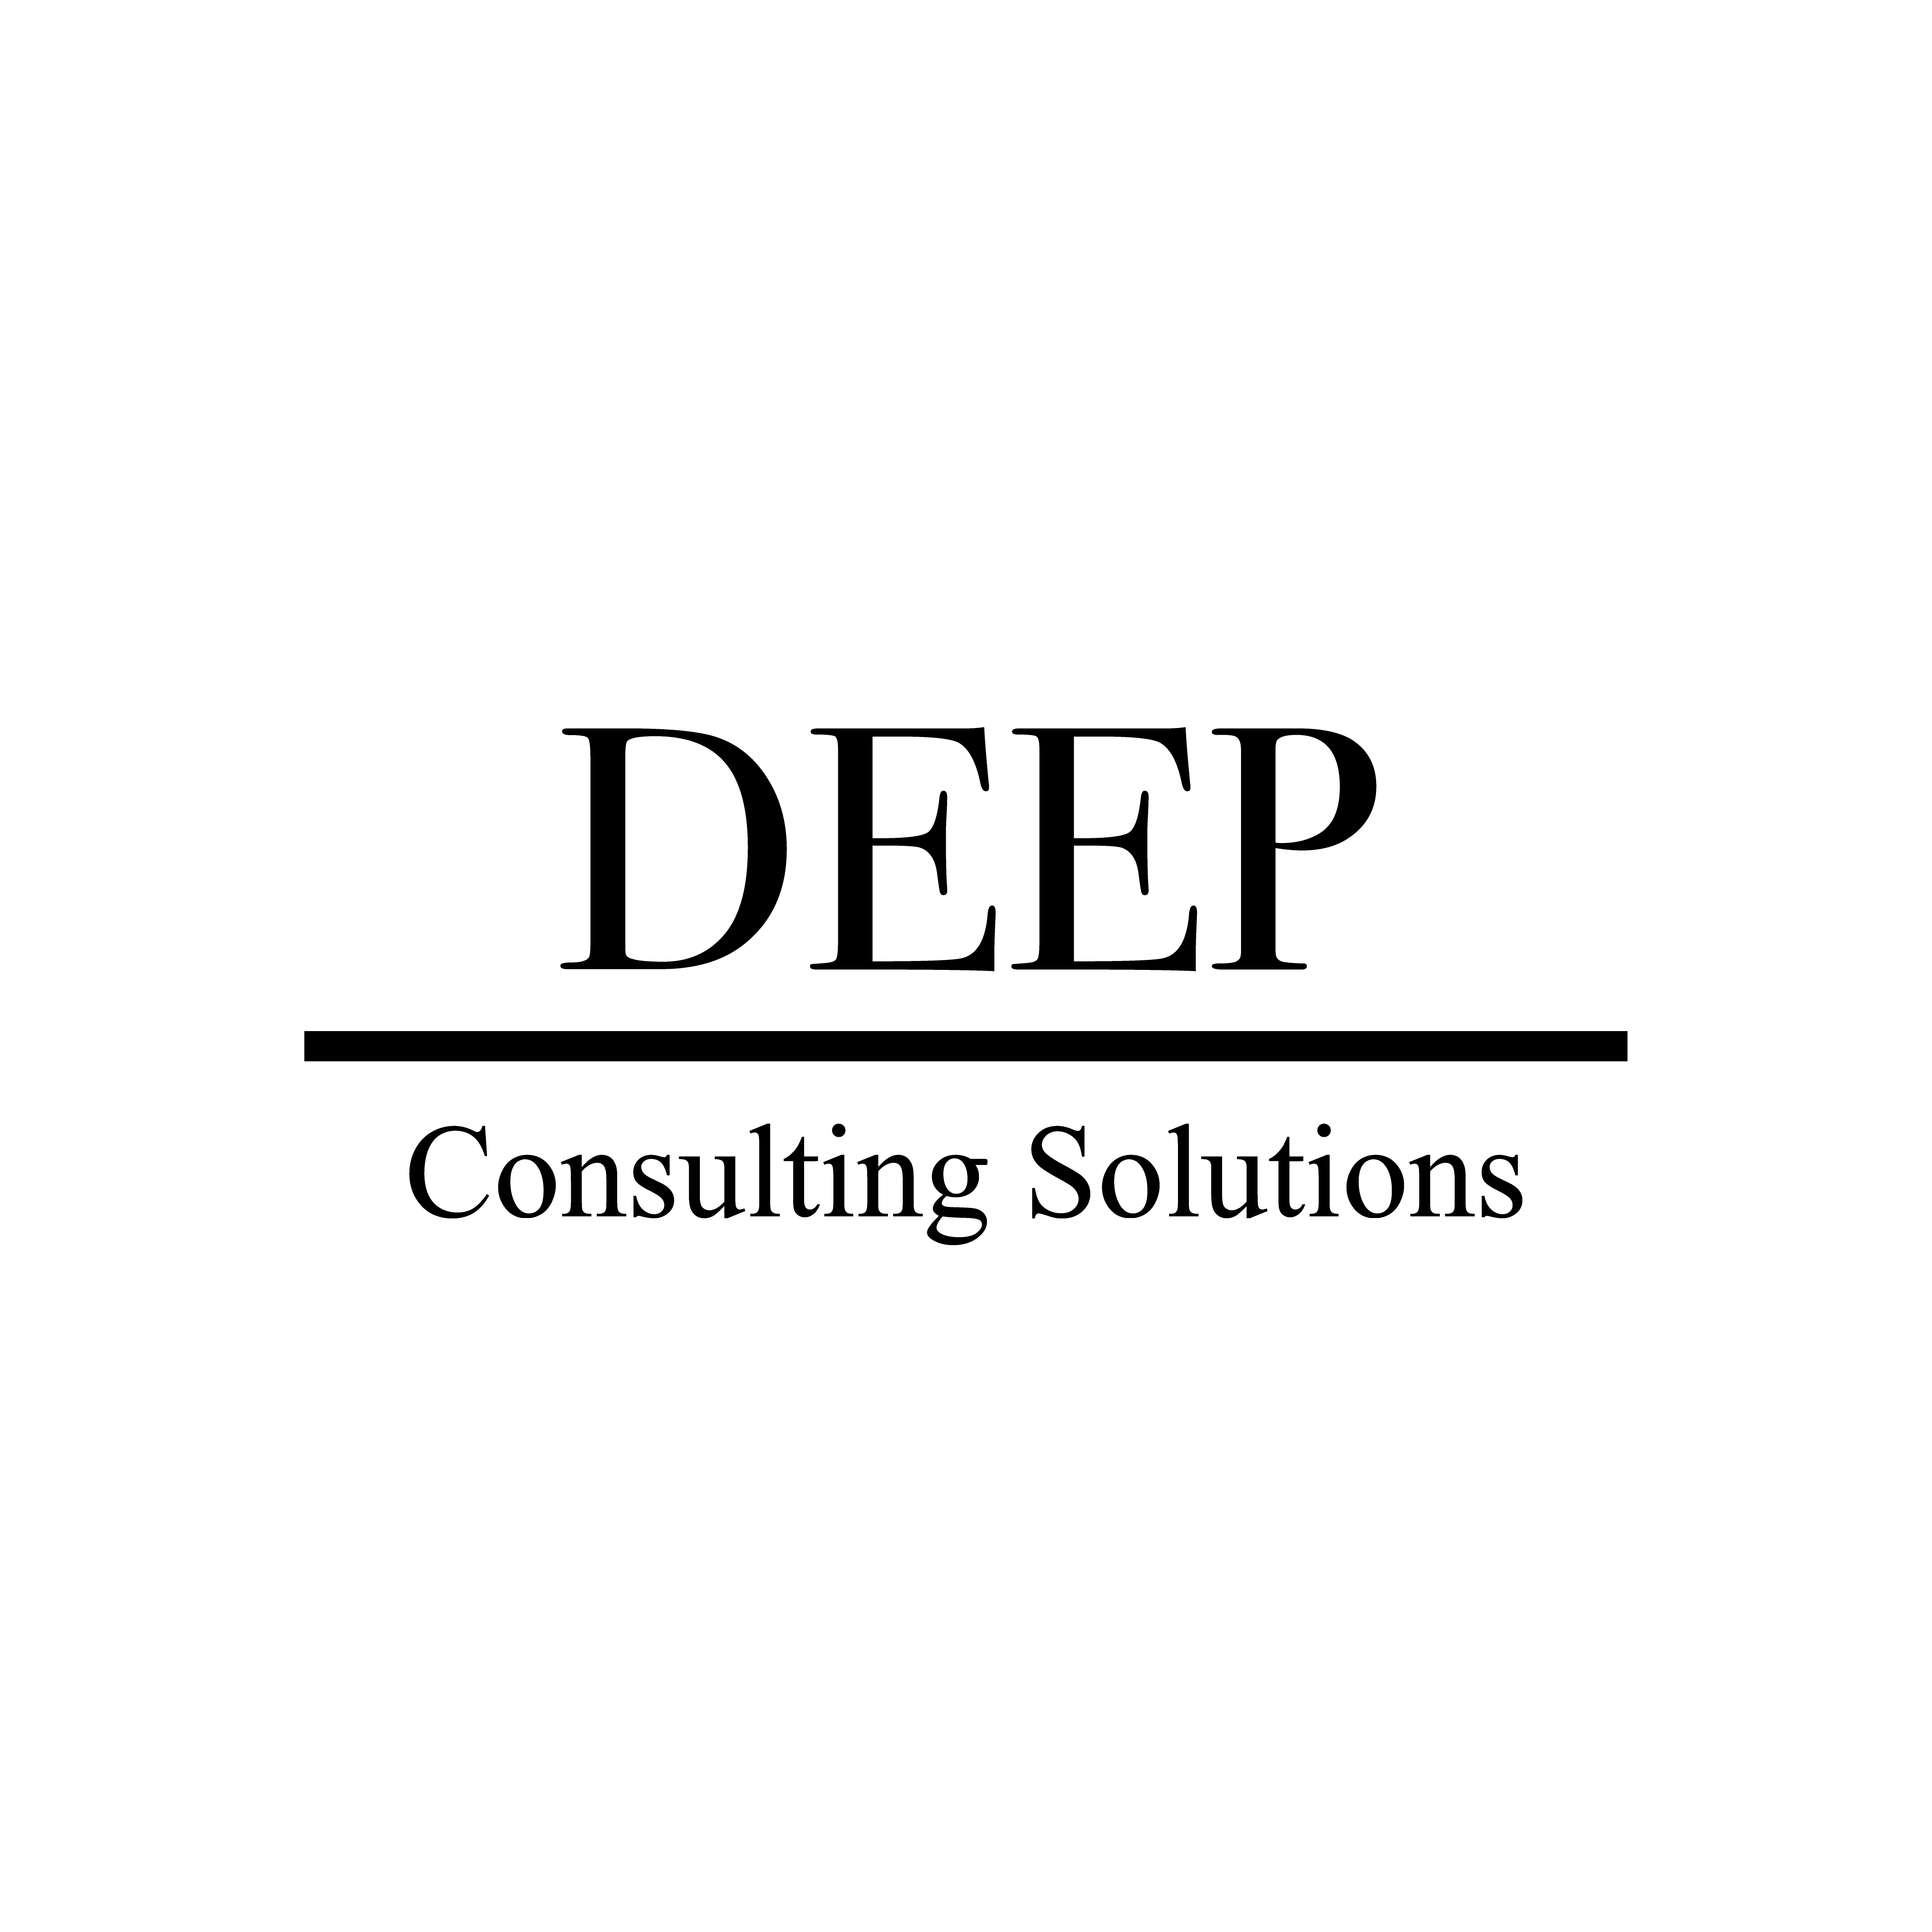 Deep Consulting Solutions Company Logo